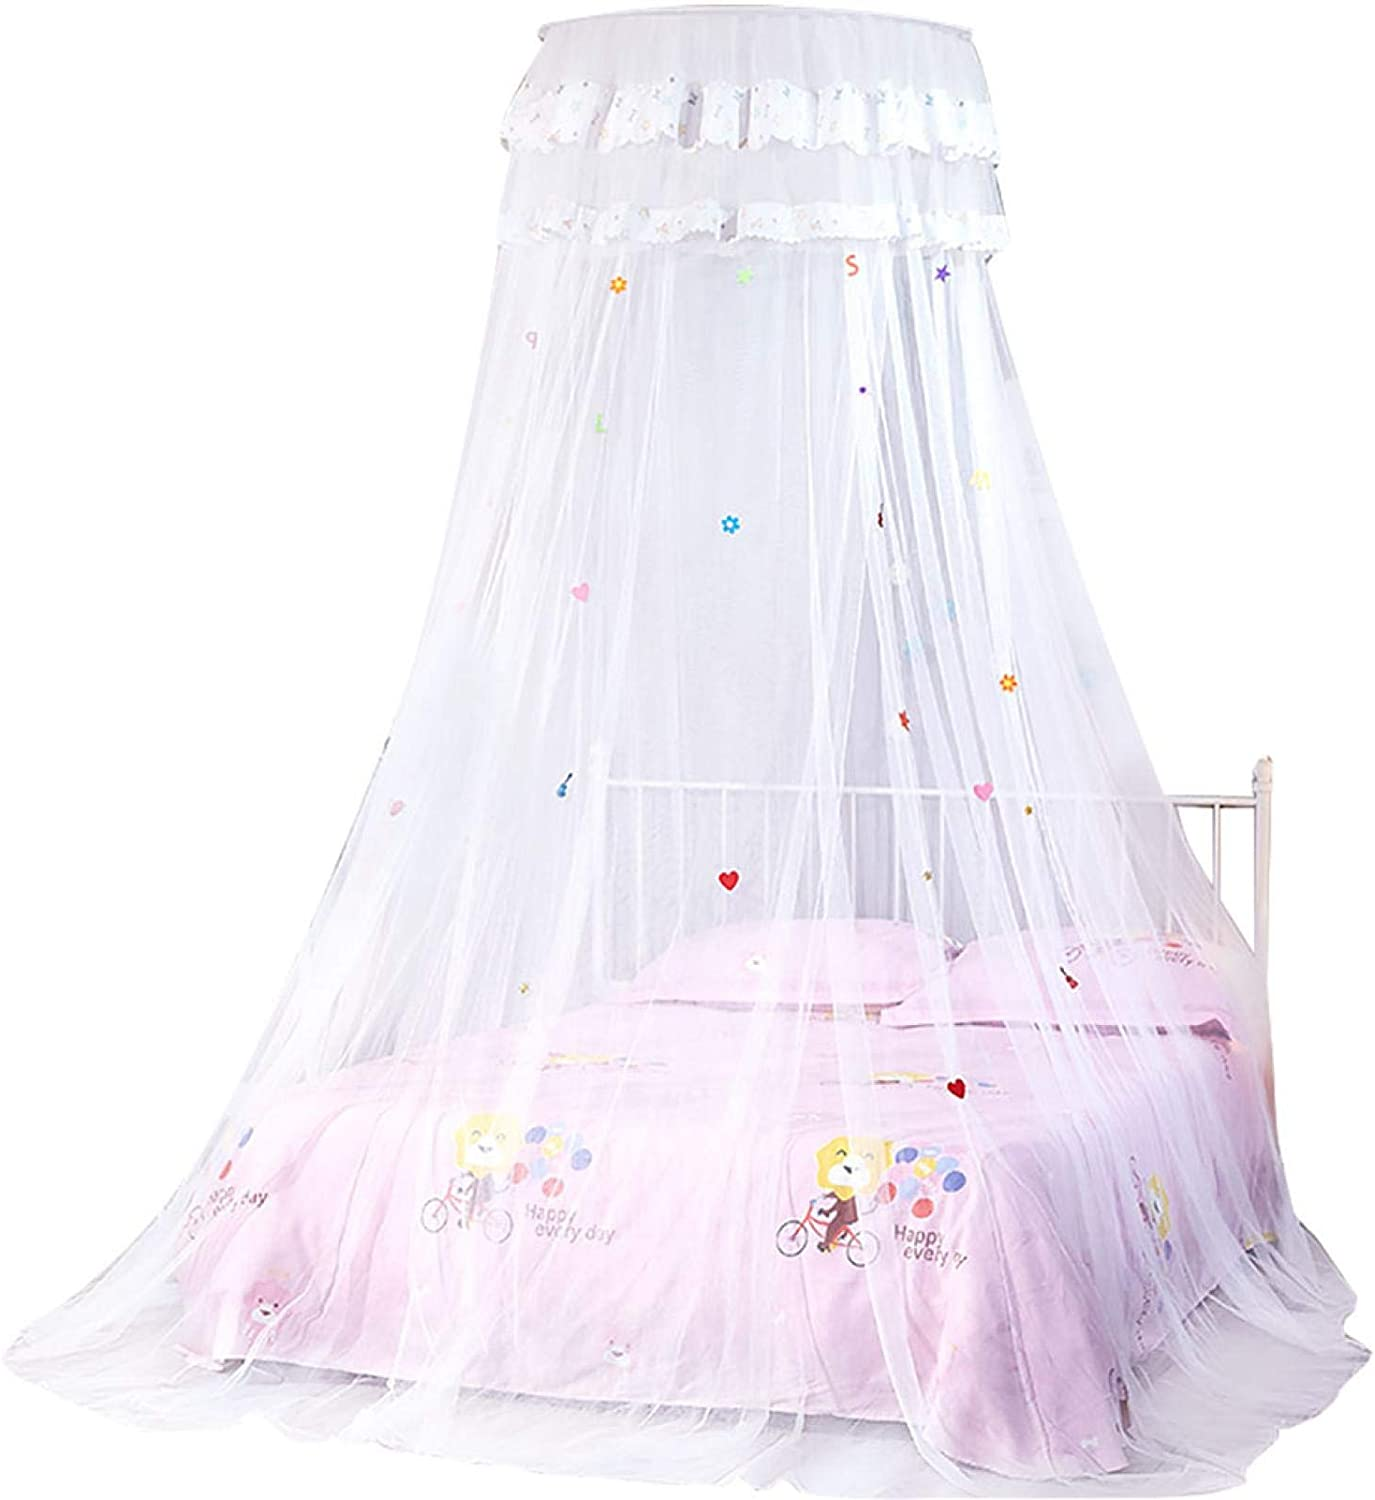 Cryfokt Genuine Free Shipping Mosquito Net 360 Degree Lace Canopy Round Princess Raleigh Mall Styl